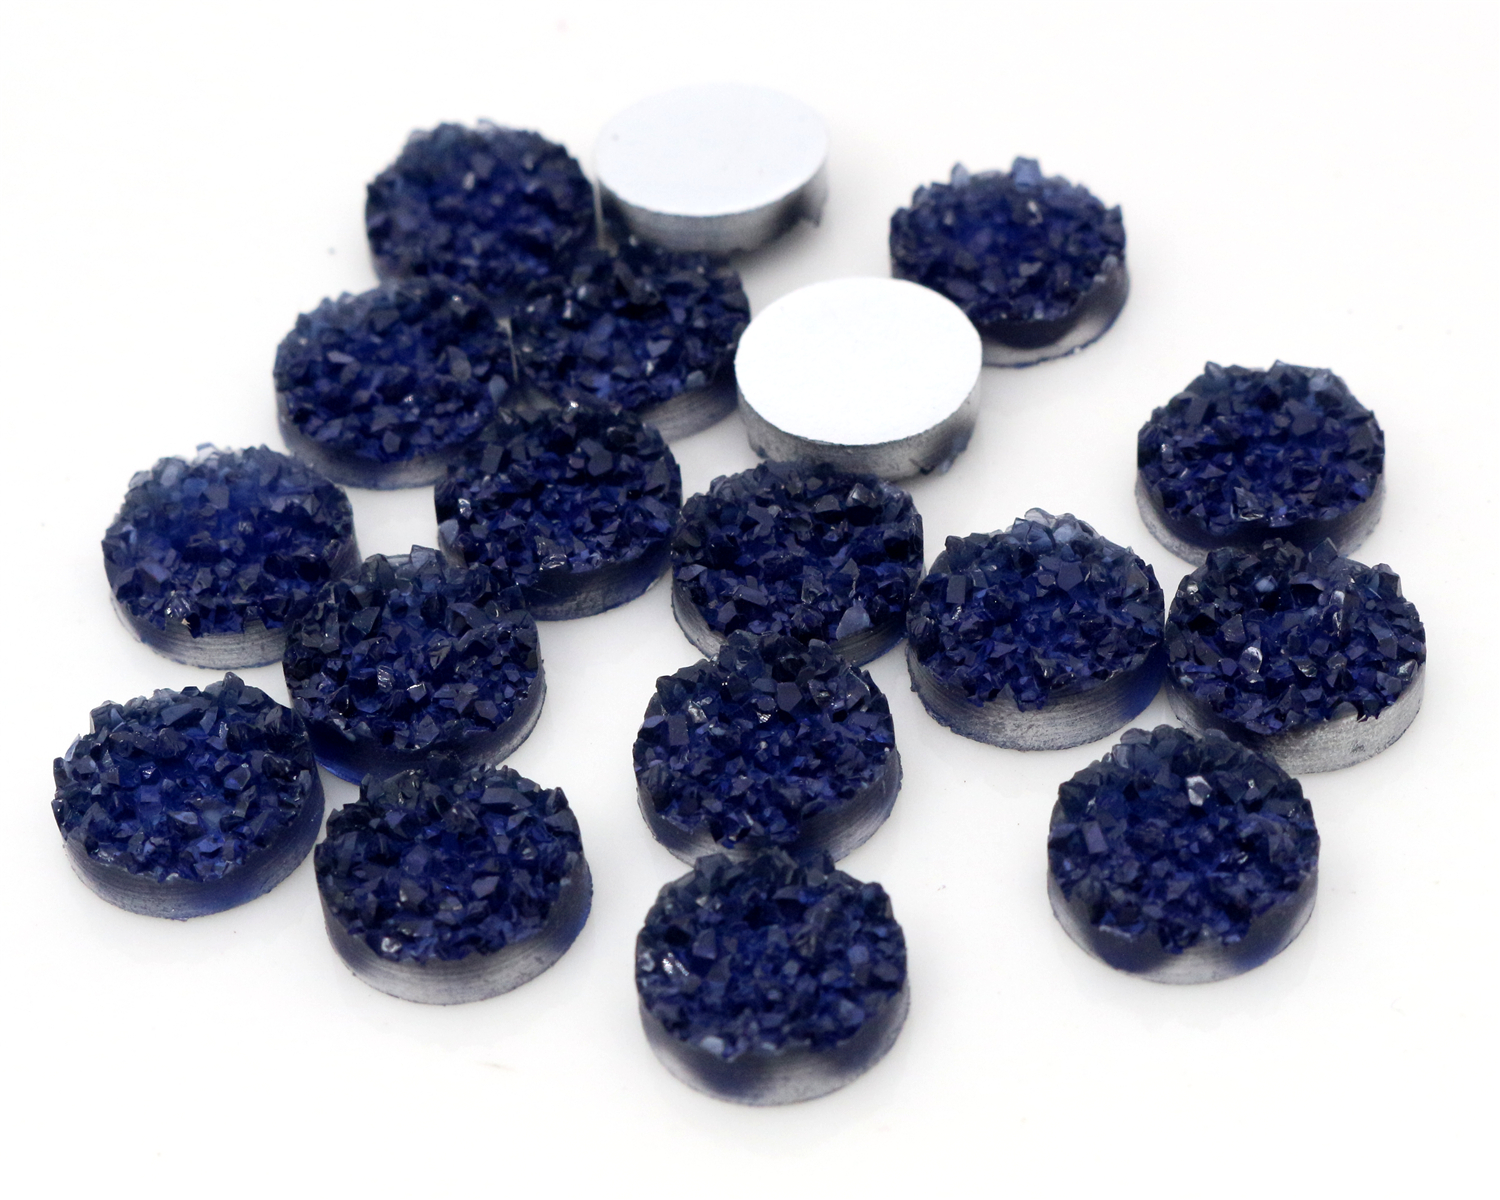 New Fashion 40pcs 12mm Blue Ink Colors Druzy Natural Ore Style Flat Back Resin Cabochons For Bracelet Earrings Accessories-V4-28